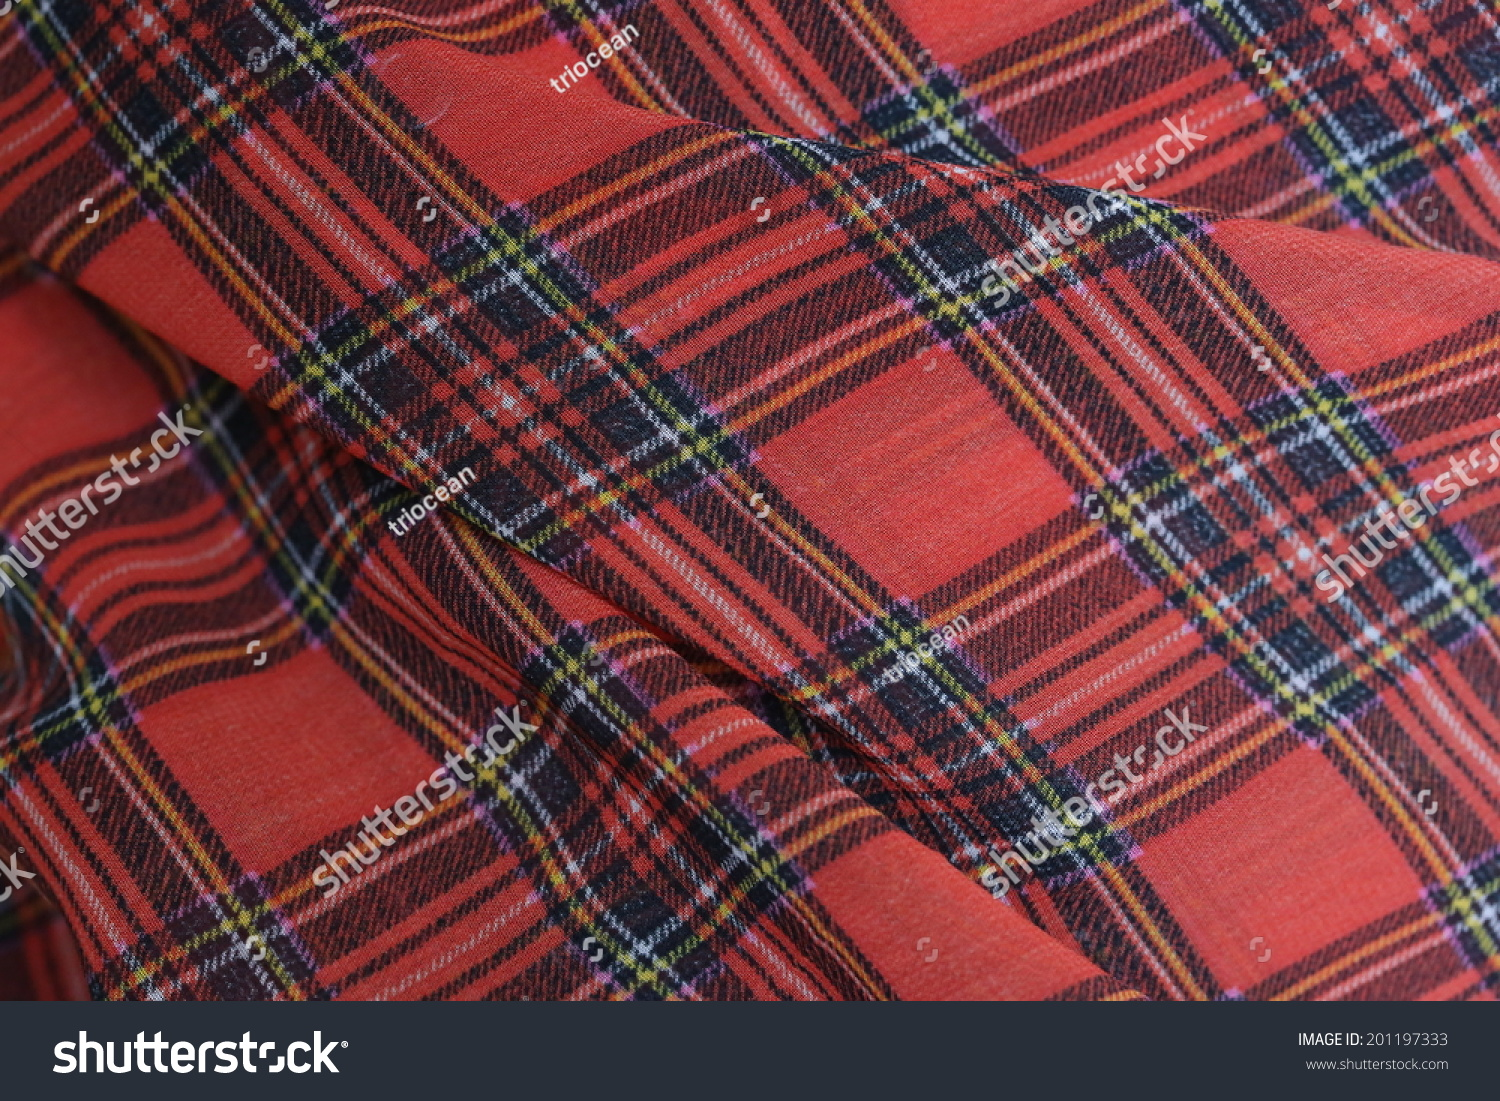 plaid fabric background plaid fabric ideal for a christmas or scottish themed background - Christmas Plaid Fabric